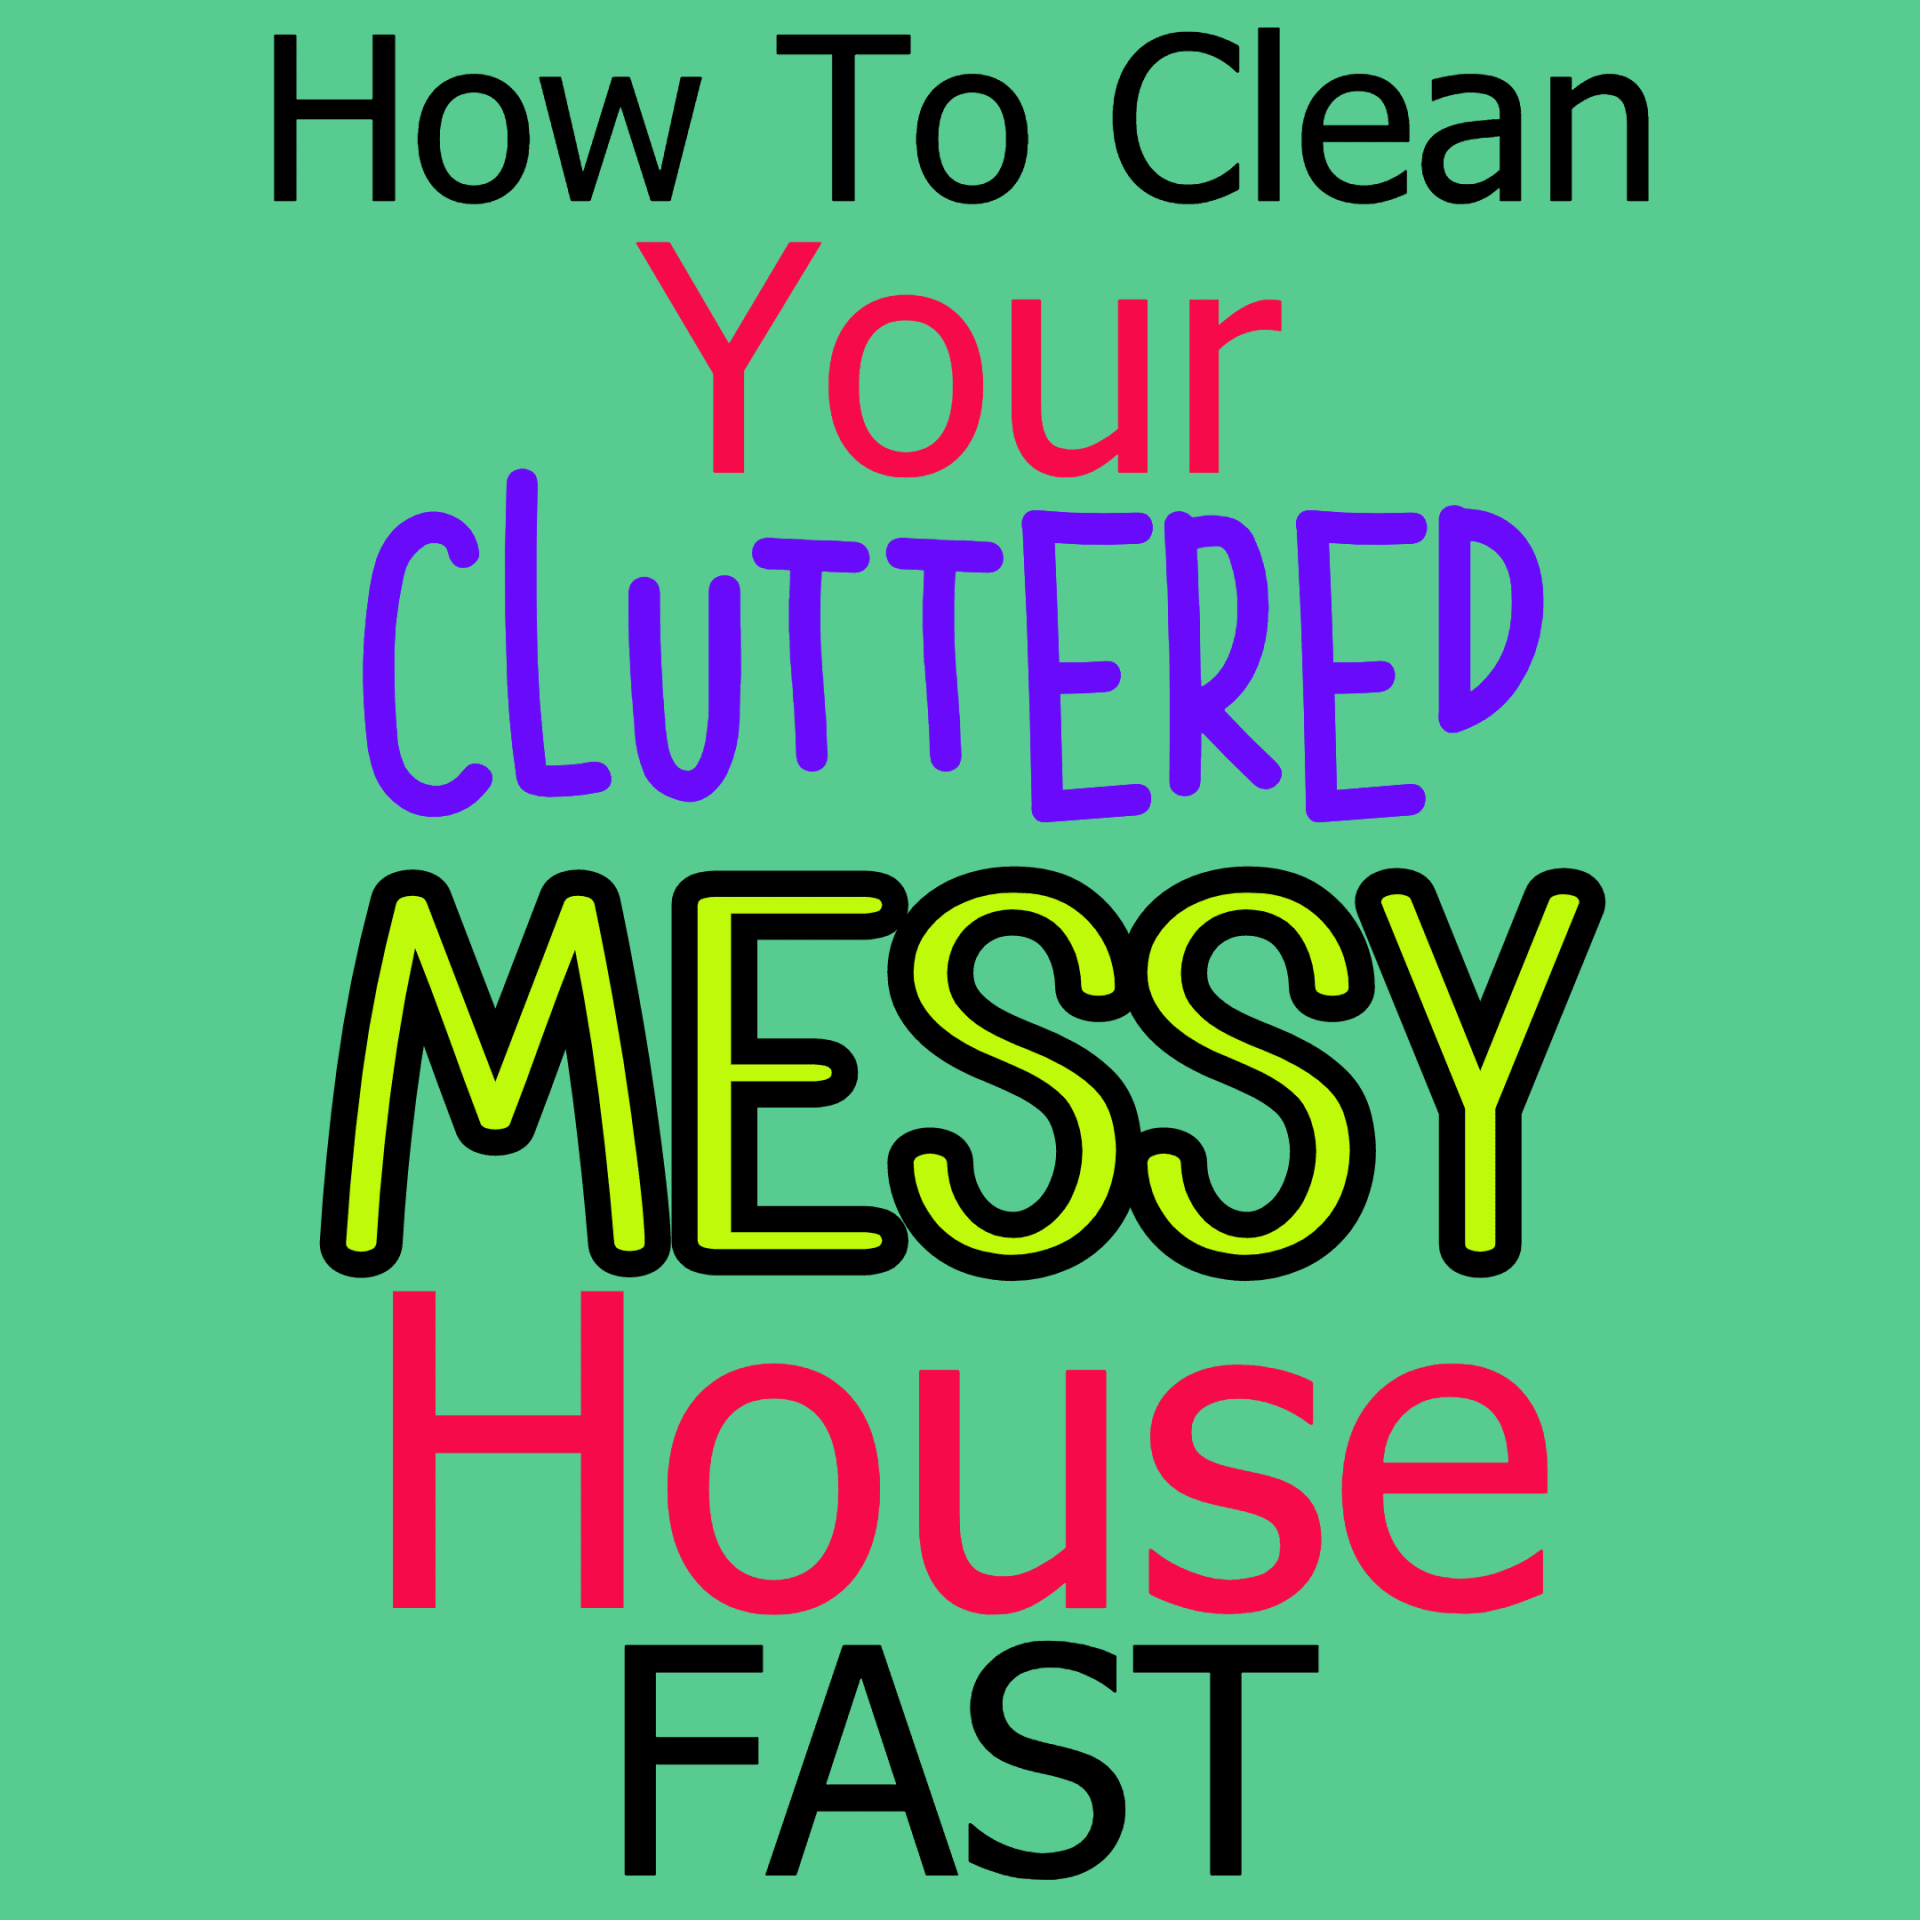 Uncluttering your home - how to clean your cluttered house fast